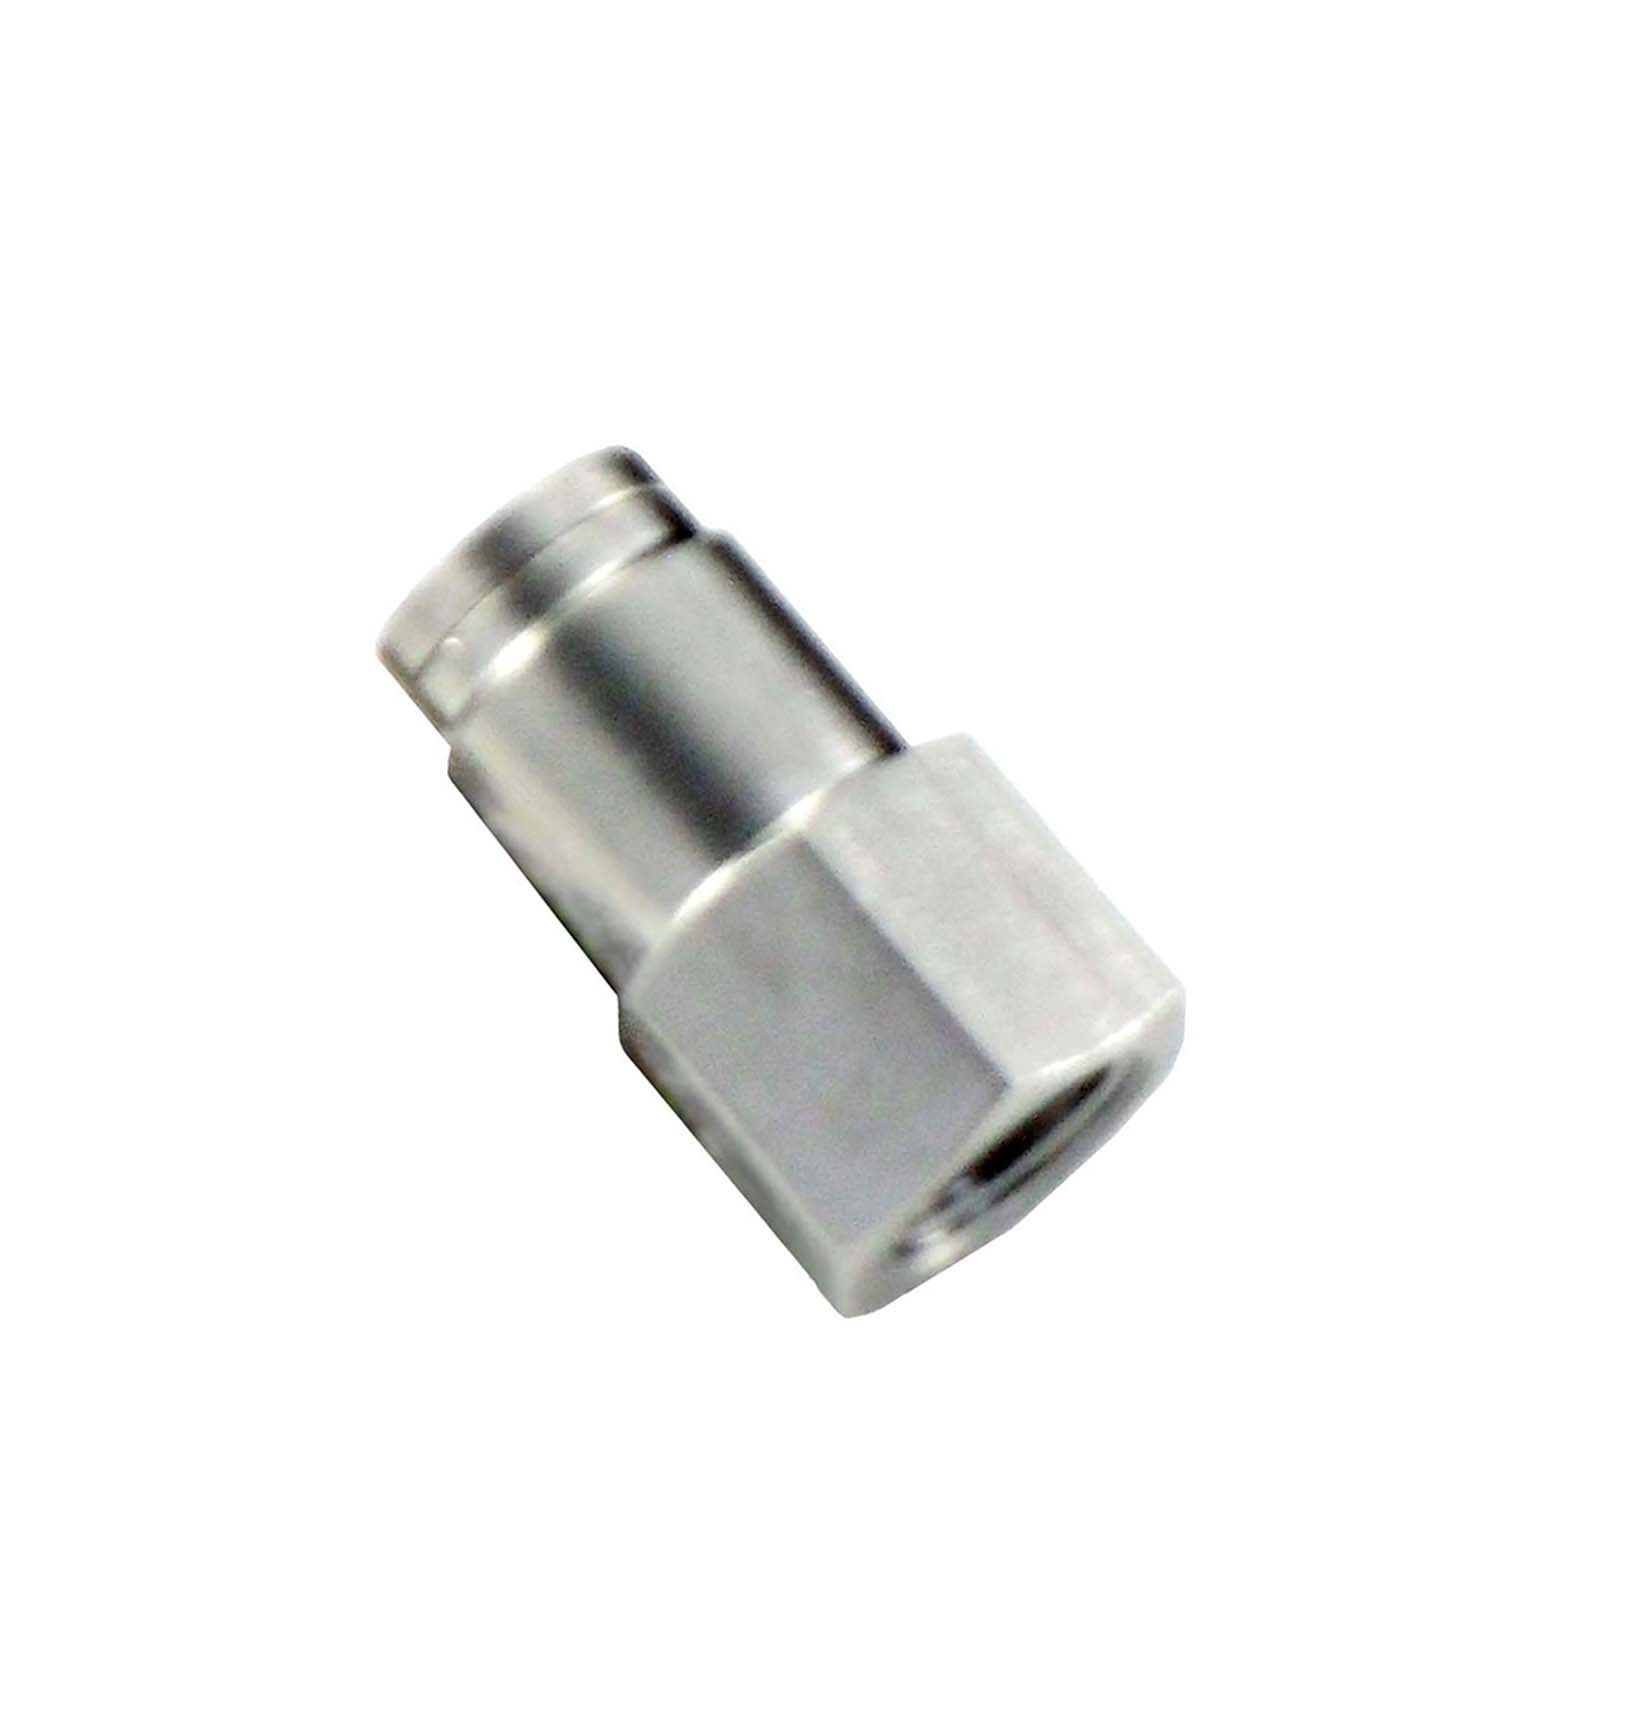 Stc stainless steel female connector push in fittings fcs